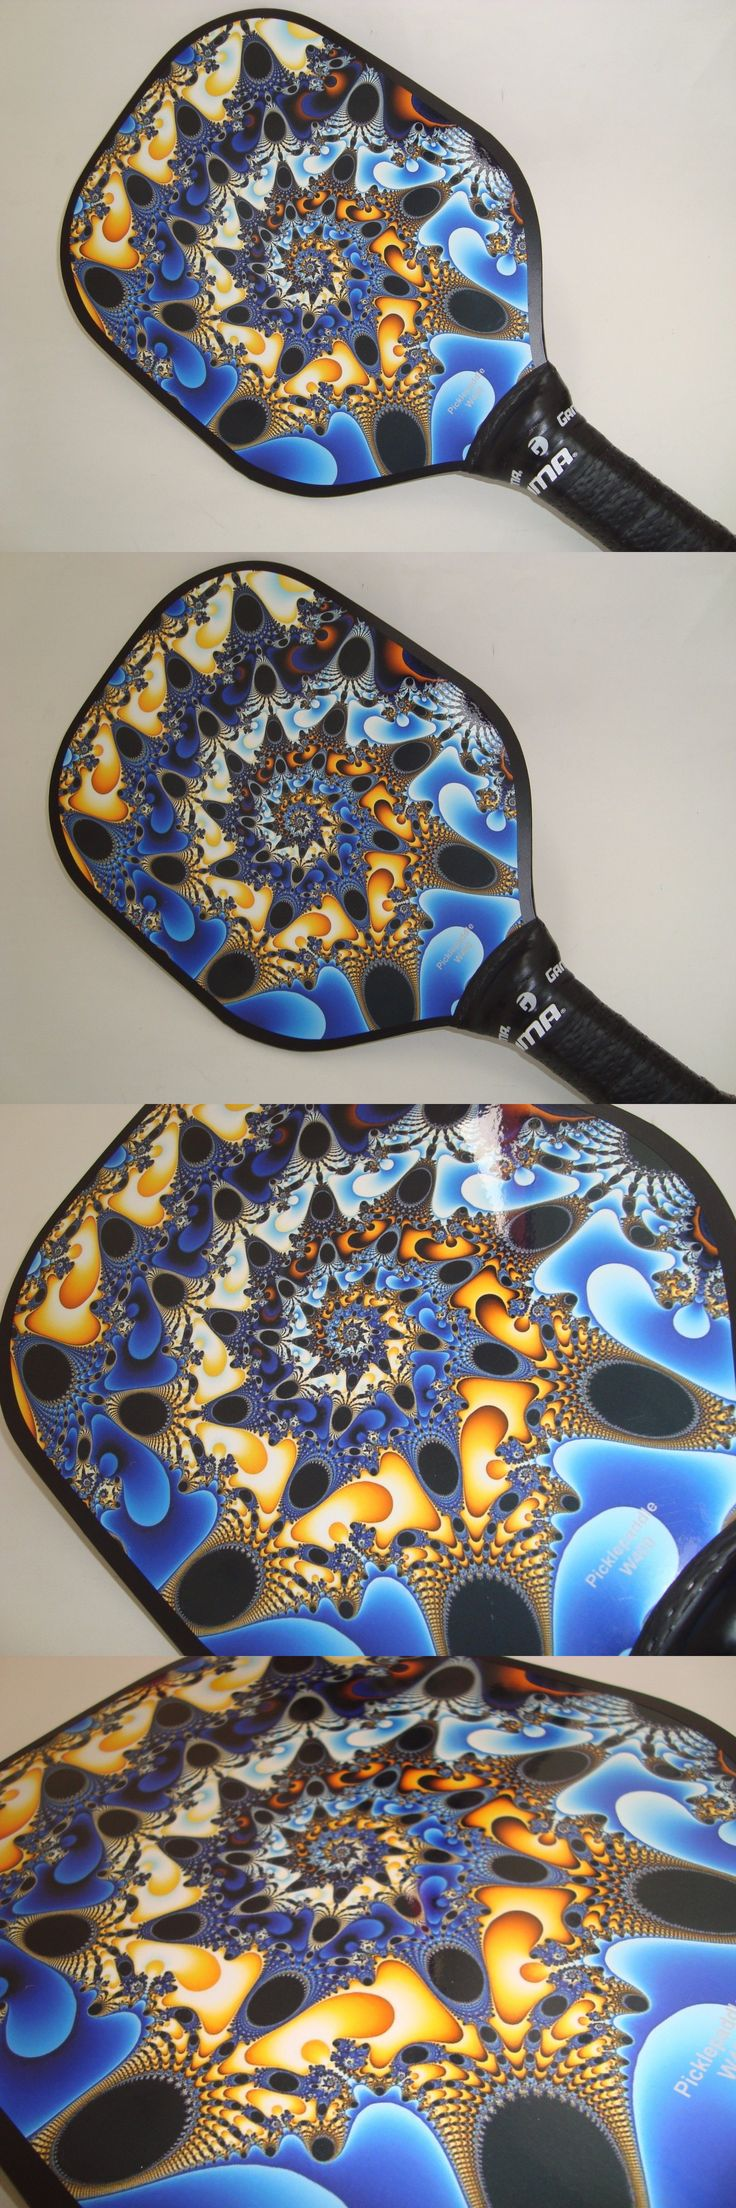 Other Tennis and Racquet Sports 159135: Super New Pickleball Paddle Widebody Pickleball Starburst Fractal W400 -> BUY IT NOW ONLY: $38.99 on eBay!